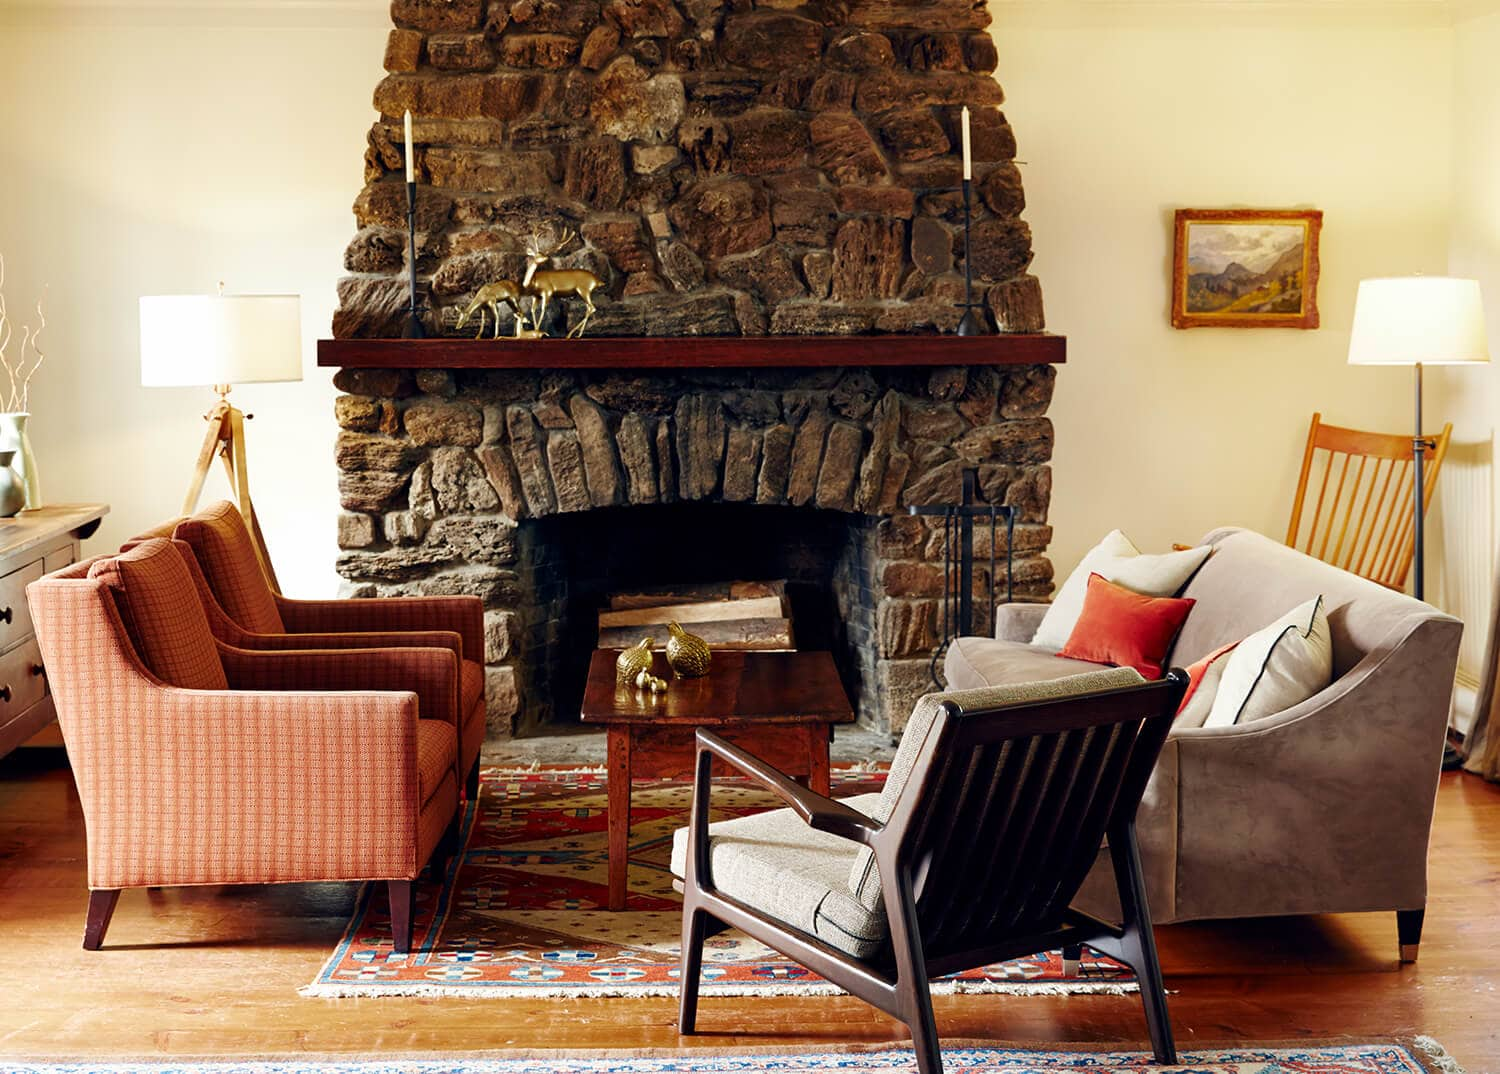 Comfortable lounge area with stone fireplace at Mountainside Addiction Treatment Center.